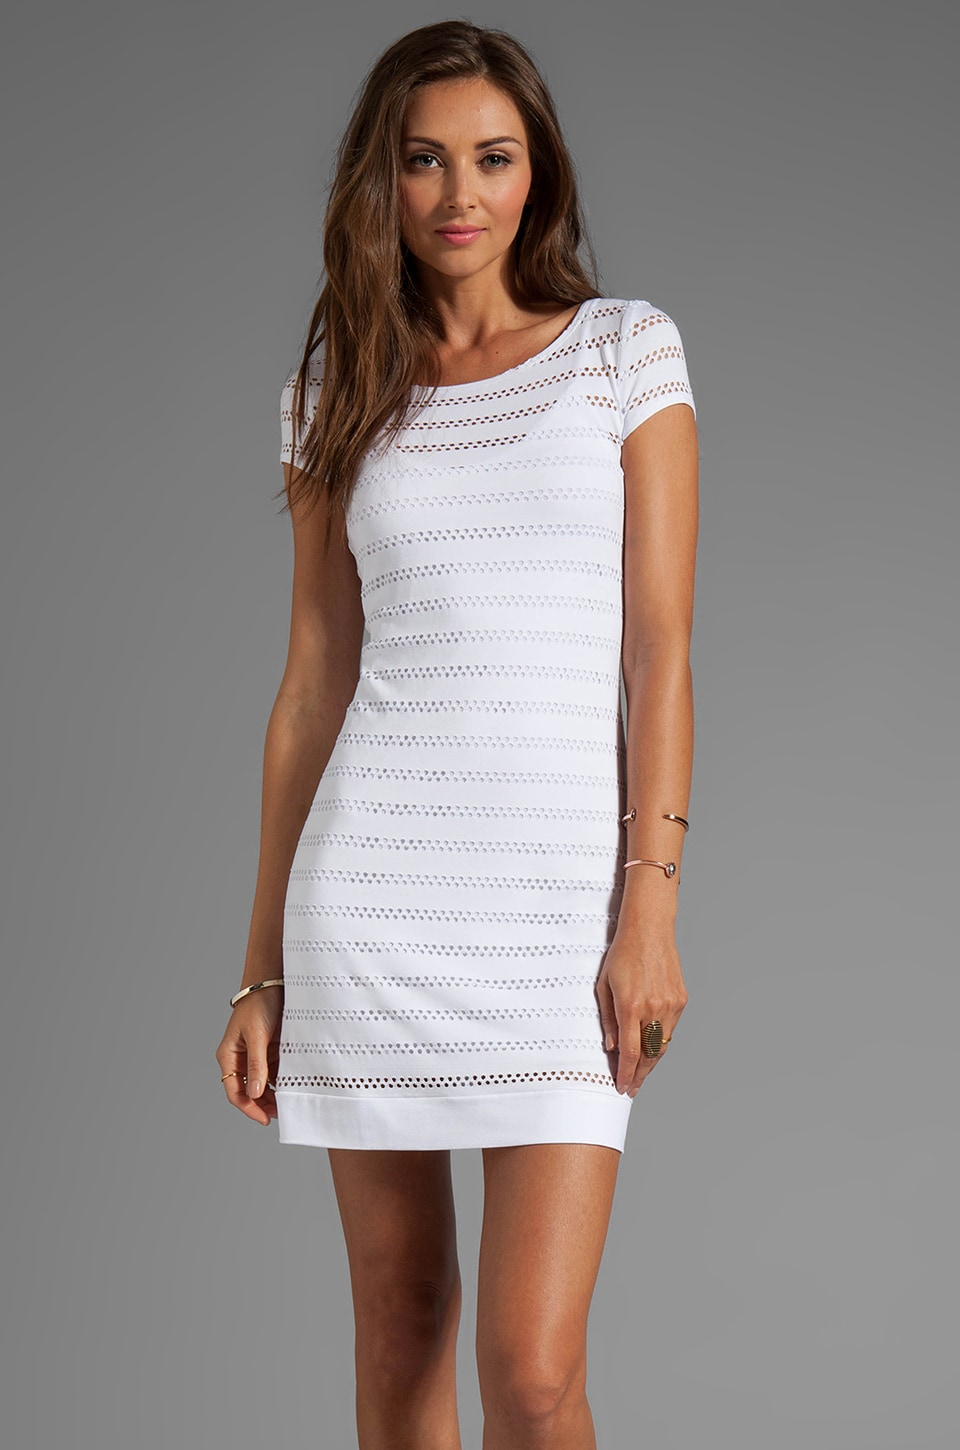 Only Hearts Eyelet Jersey Cap Sleeve Shift Dress in White